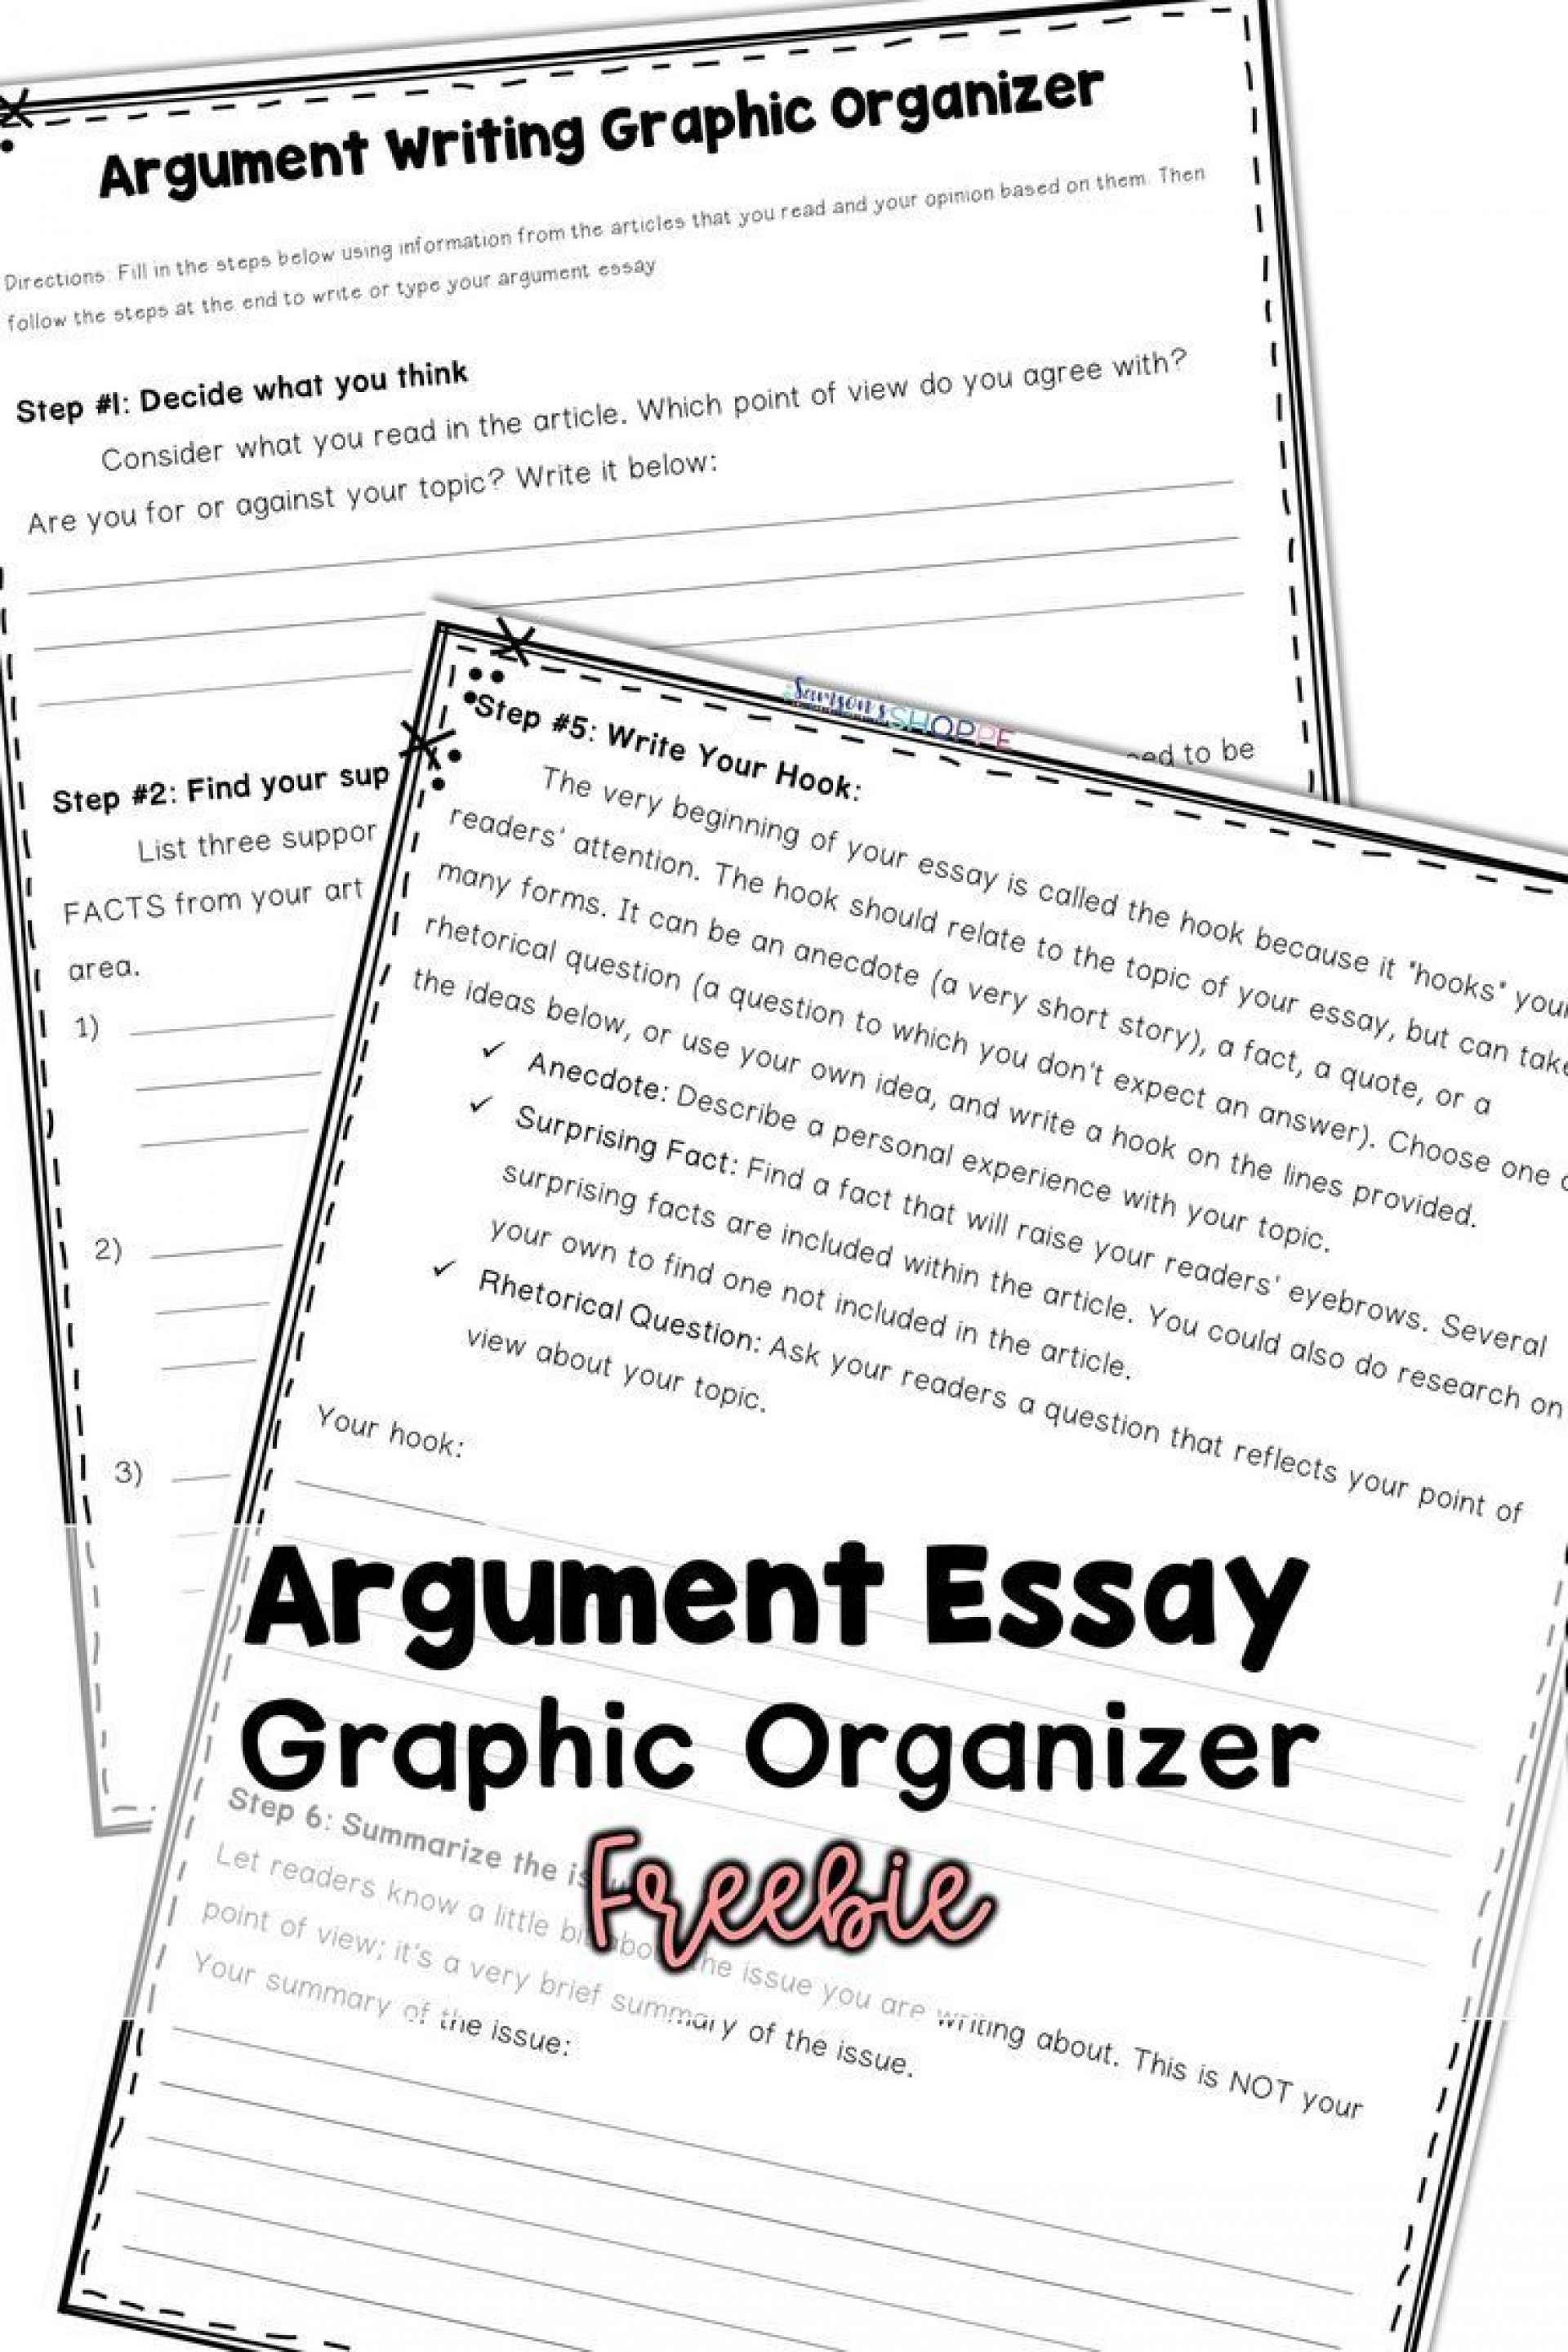 024 Essay Example Argumentative Graphic Incredible Organizer For Middle School Pdf 1920